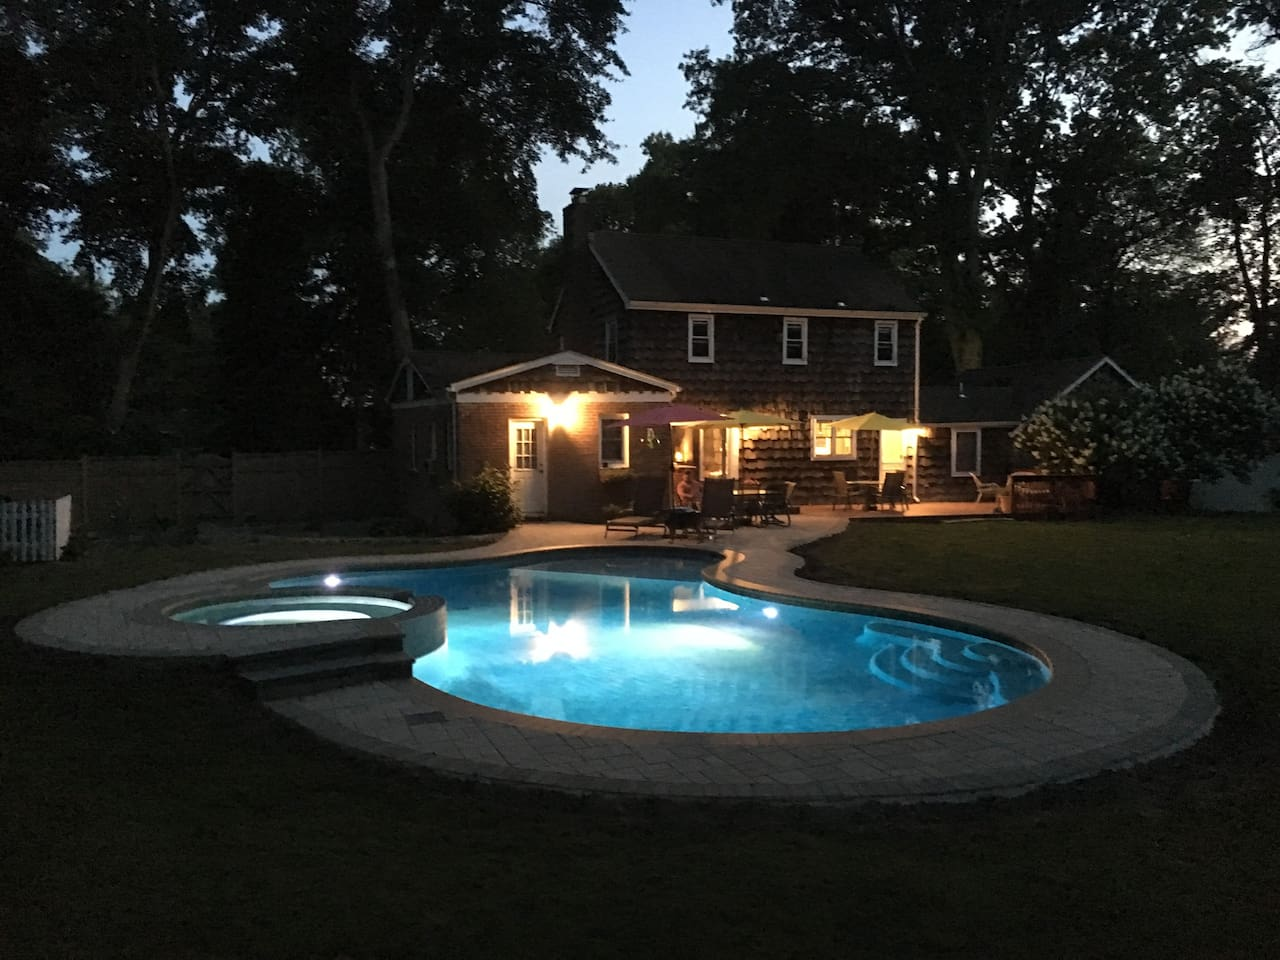 Pool and spa in the evening